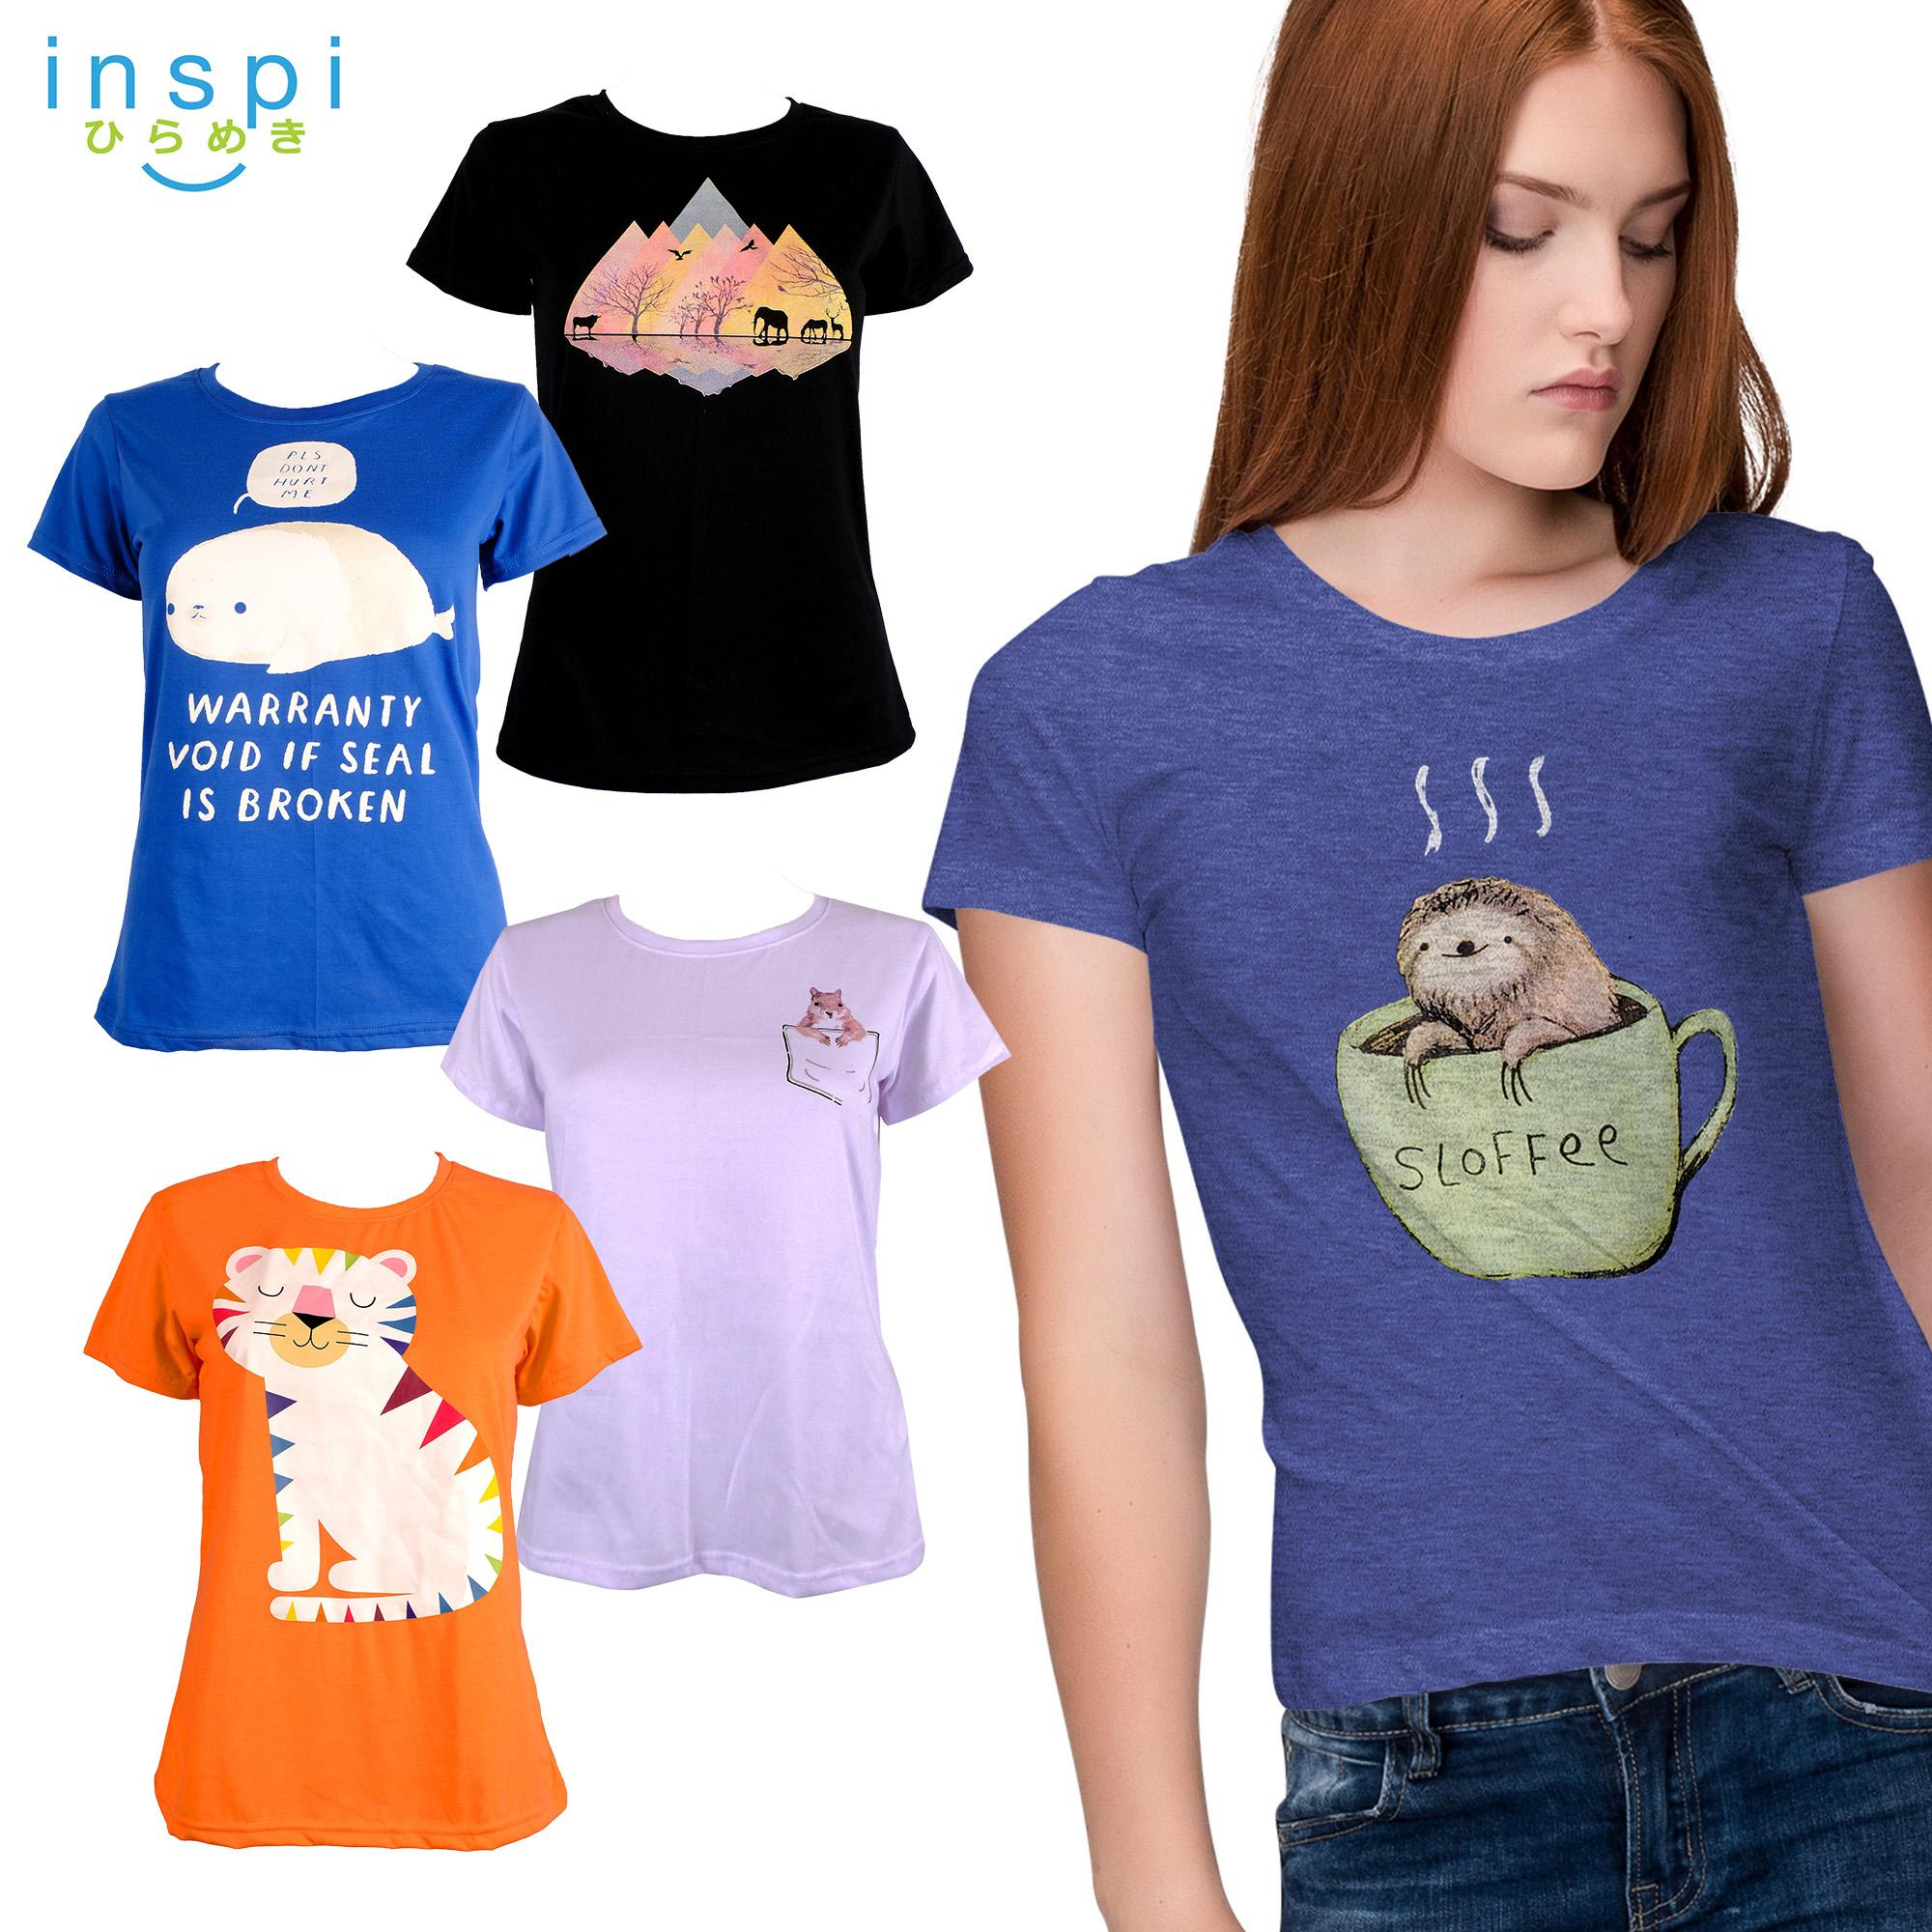 b652185c5 INSPI Tees Ladies Pet Collection tshirt printed graphic tee Ladies t shirt  shirts women tshirts for